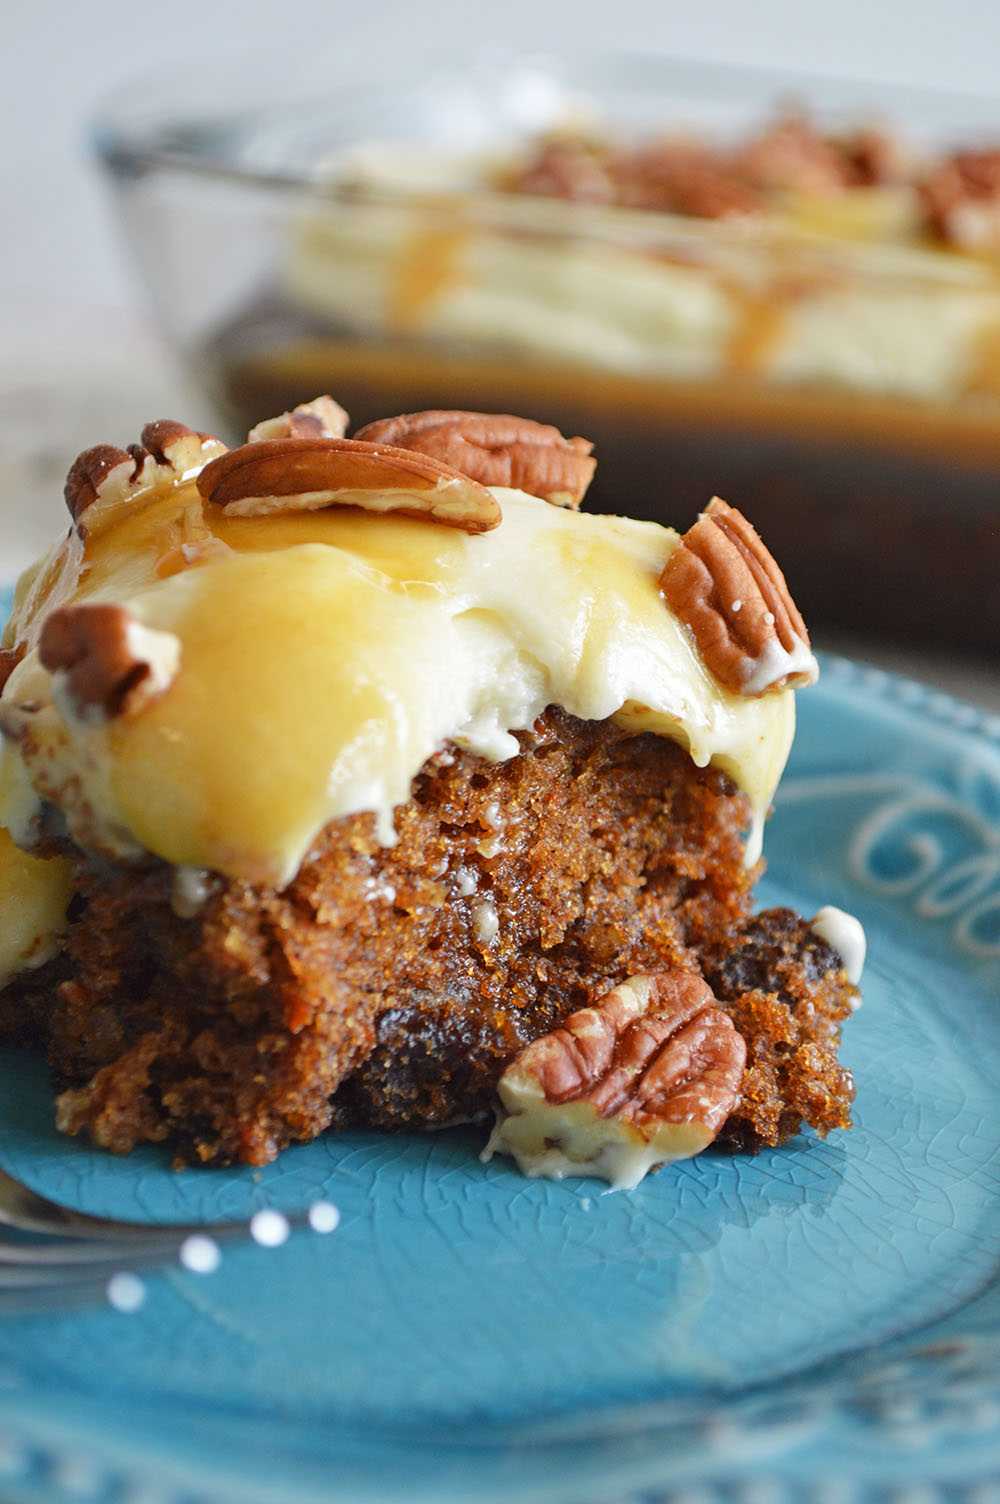 Caramel Carrot Cake Poke Cake with Maple Cream Cheese Frosting